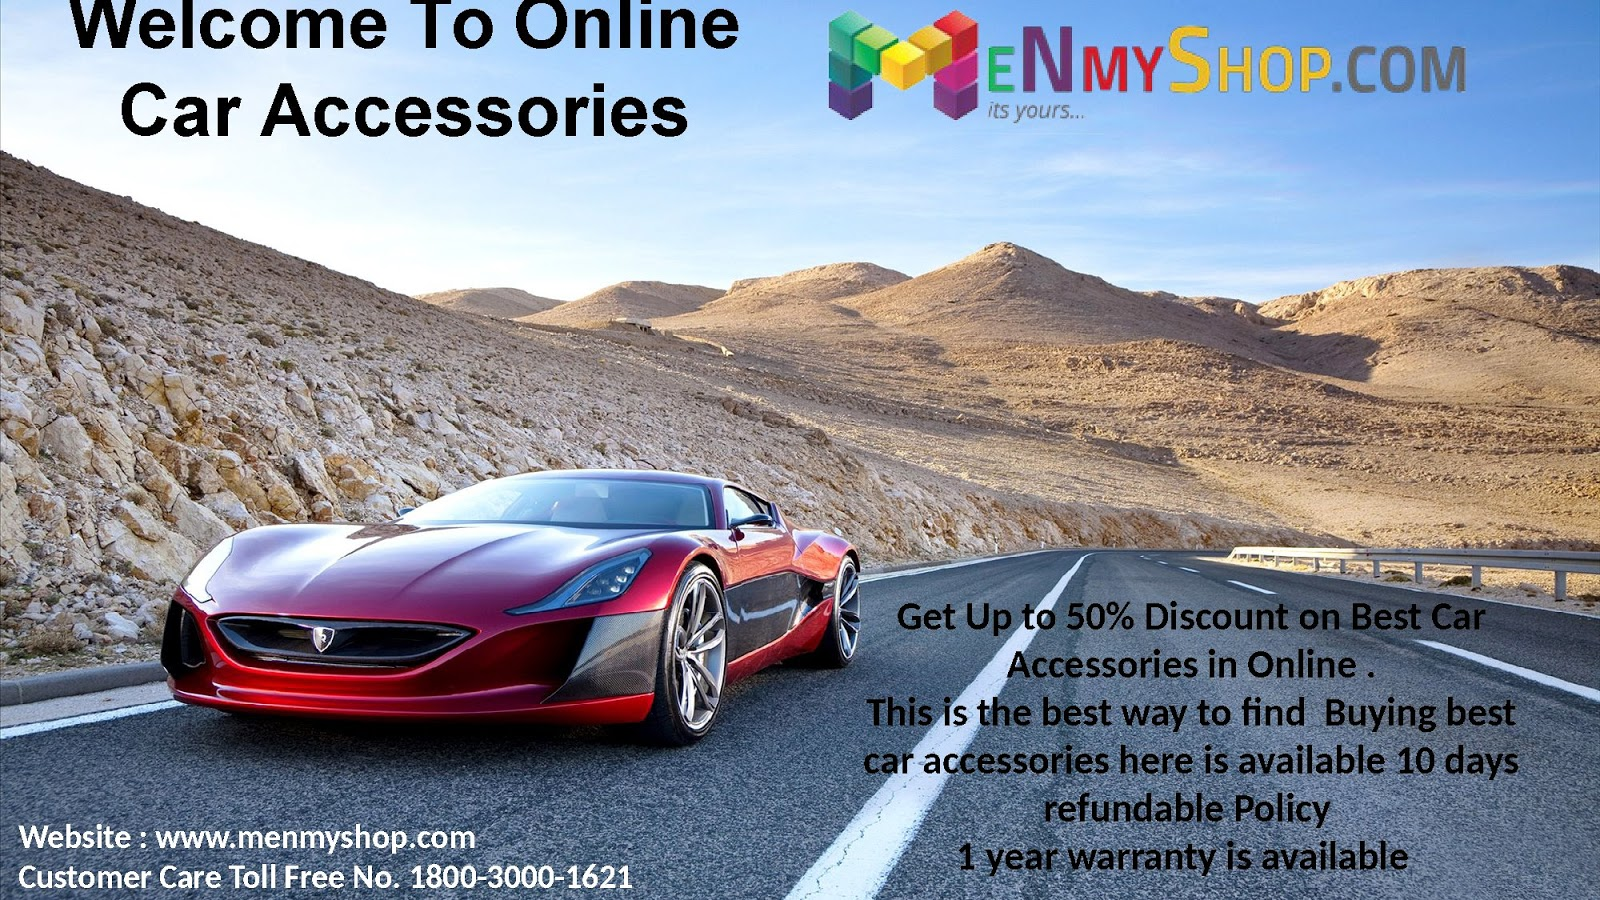 Hurry Purchase Best Car Accessories Online Shop it Lowest Price ...